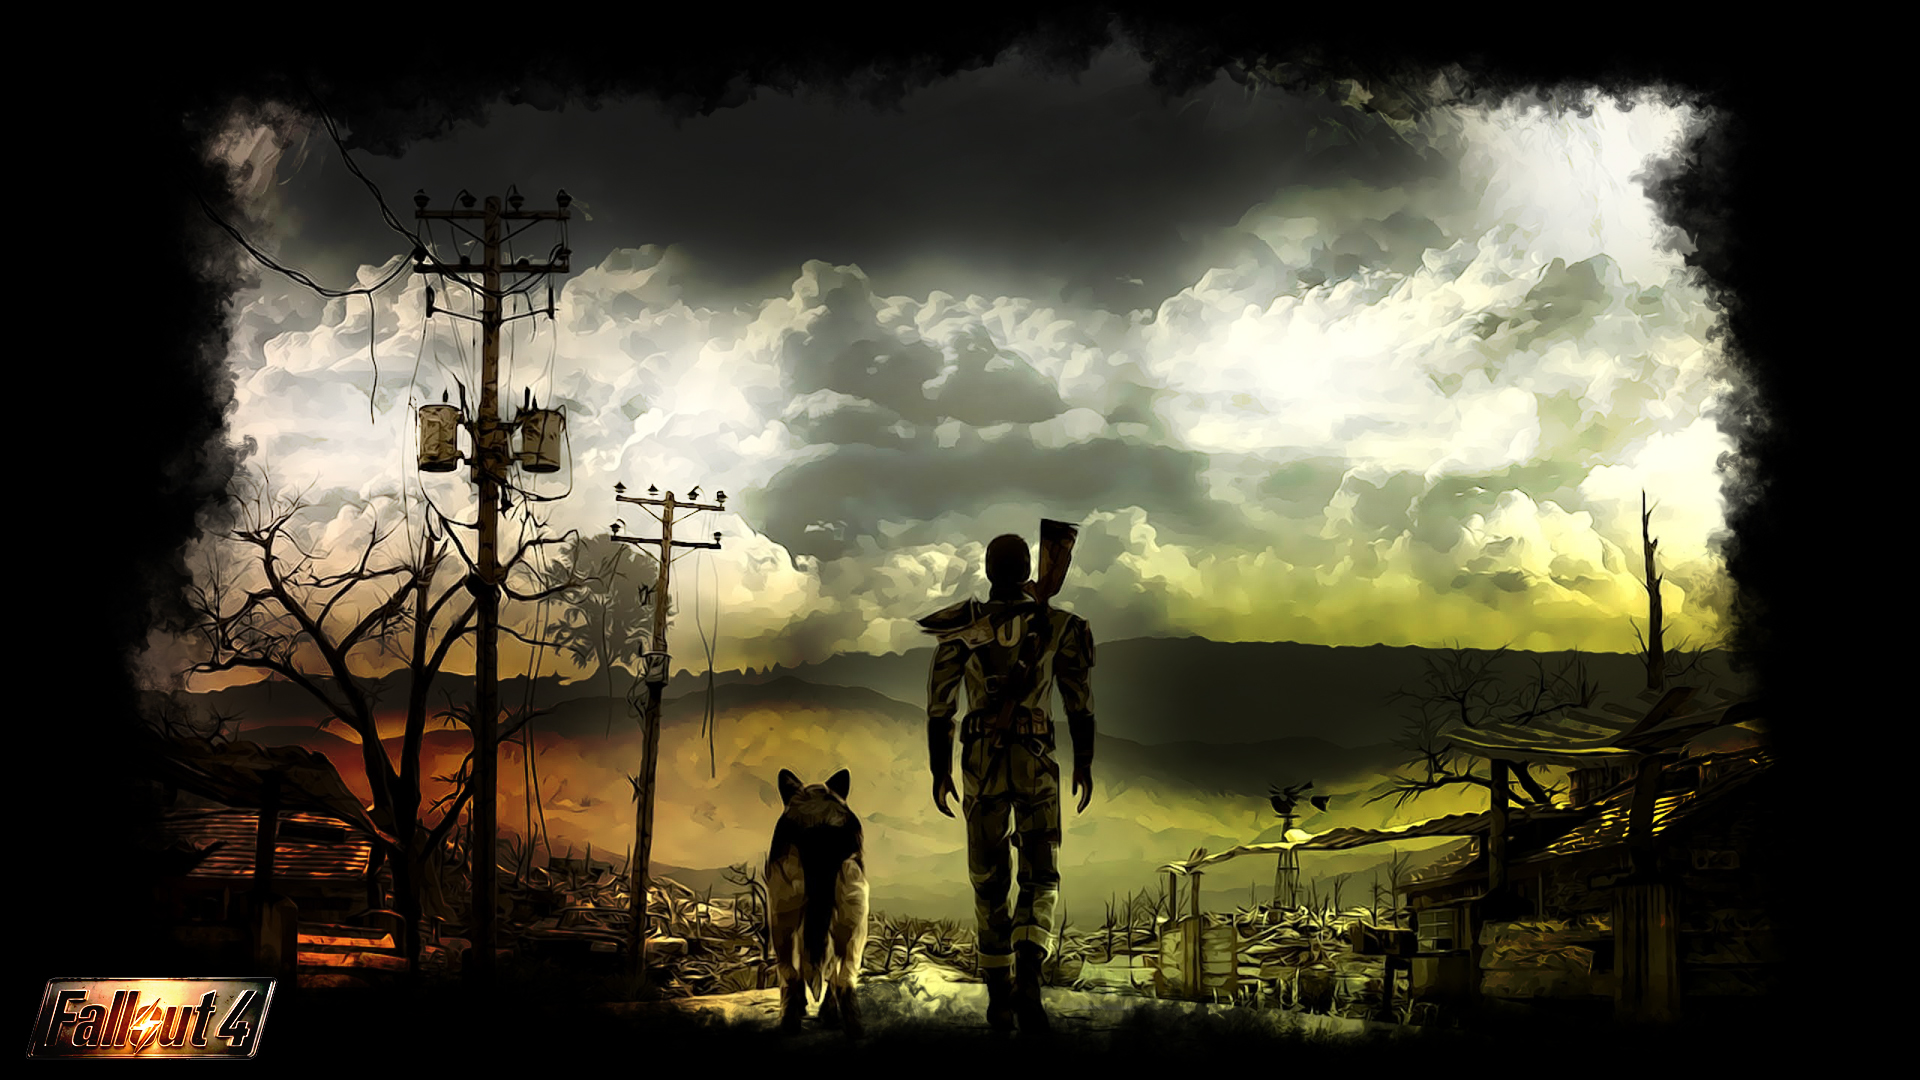 Wallpaper Fallout 4